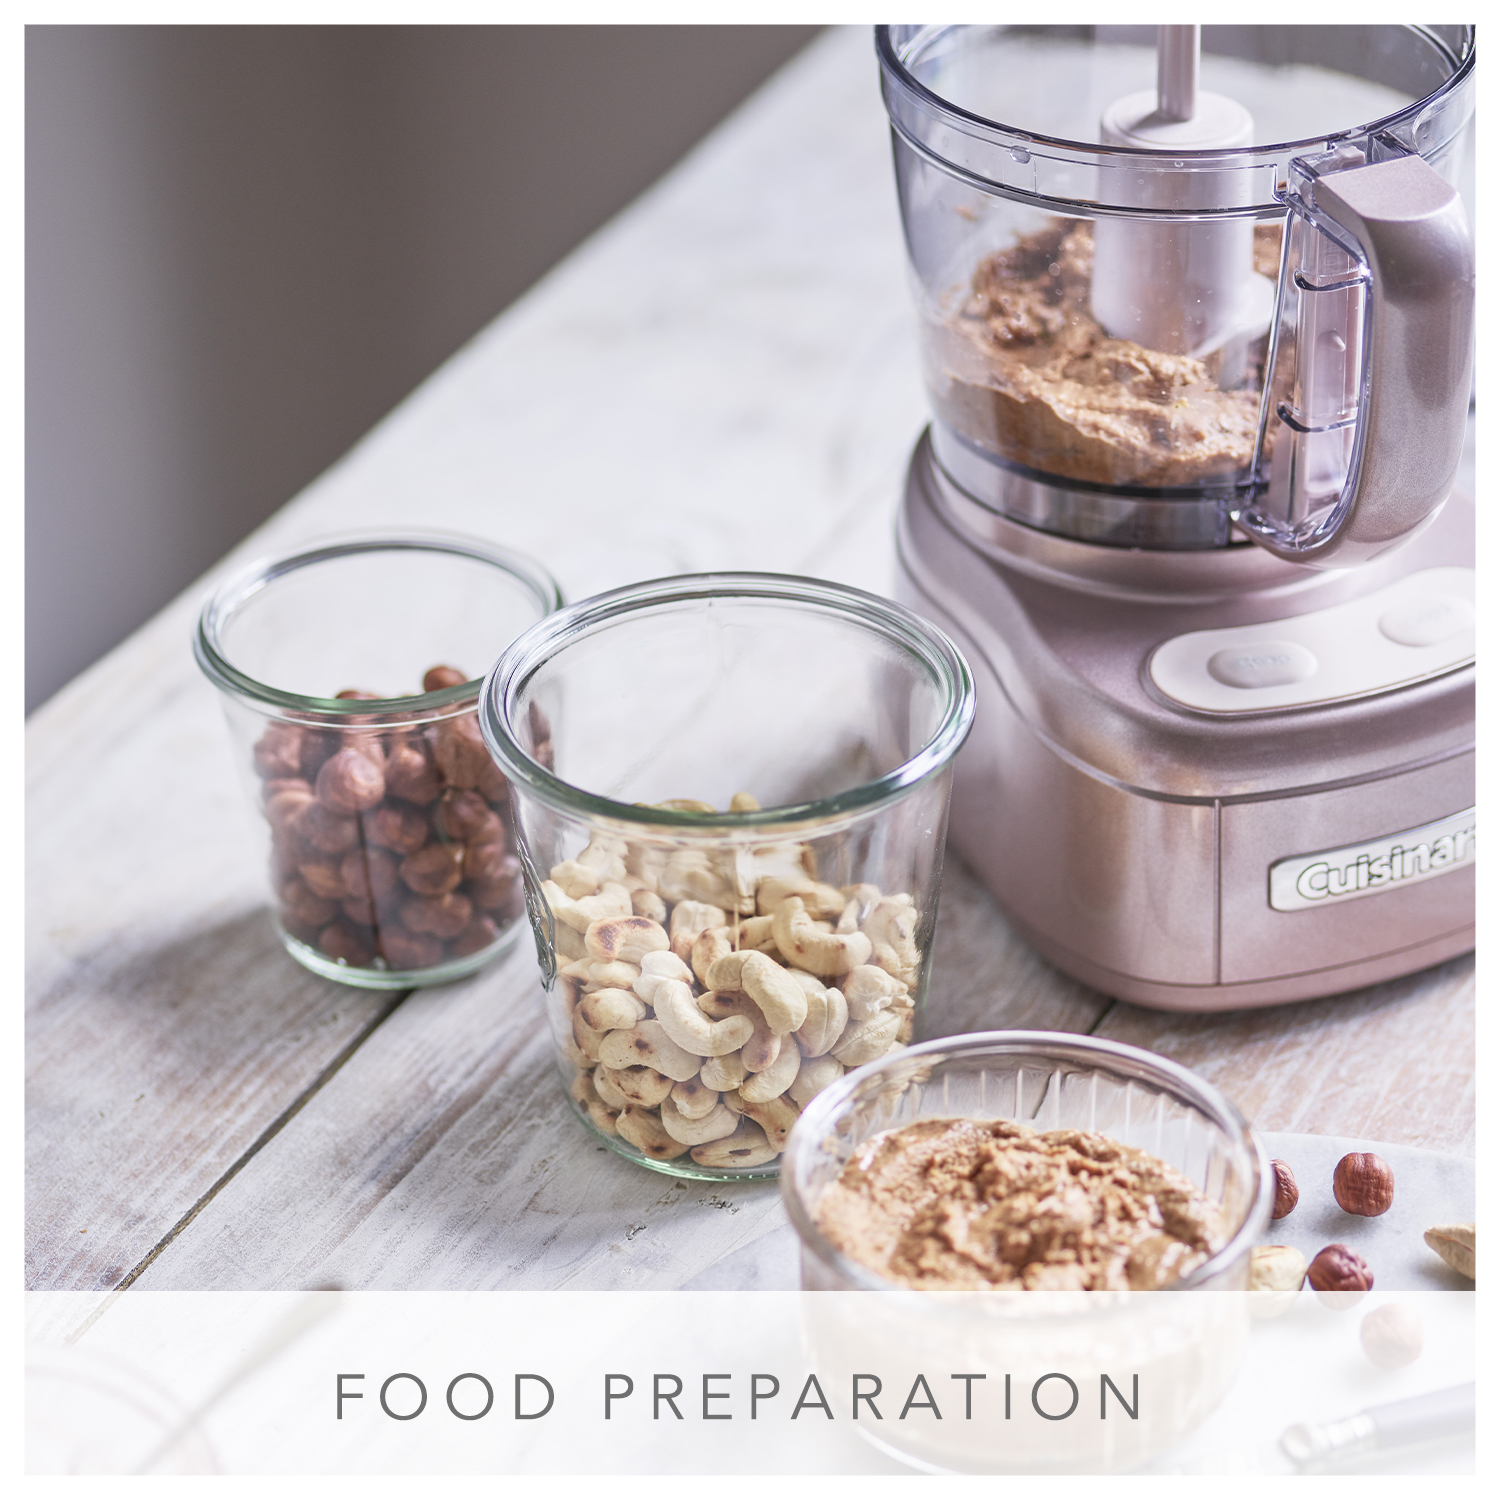 cuisinart food preparation